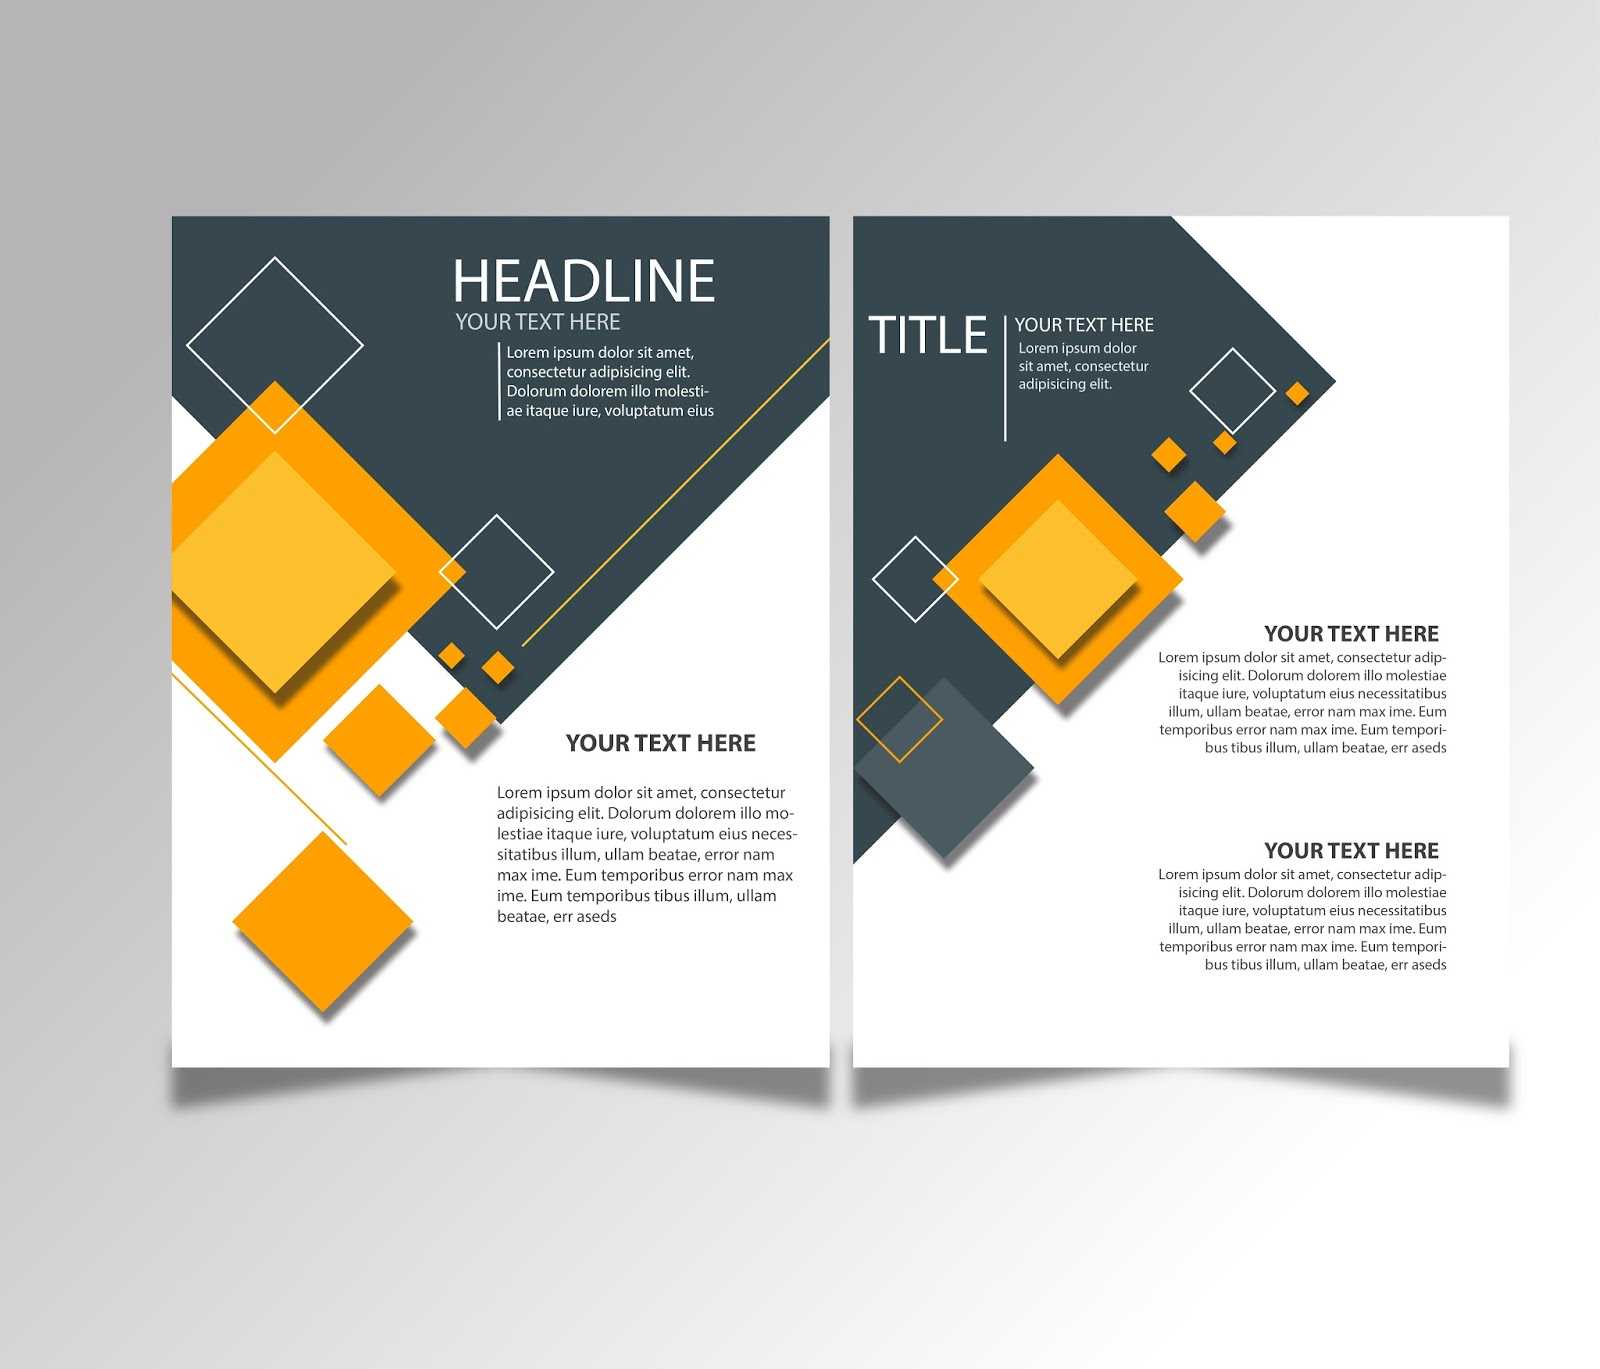 Free Download Brochure Design Templates Ai Files - Ideosprocess Throughout Creative Brochure Templates Free Download